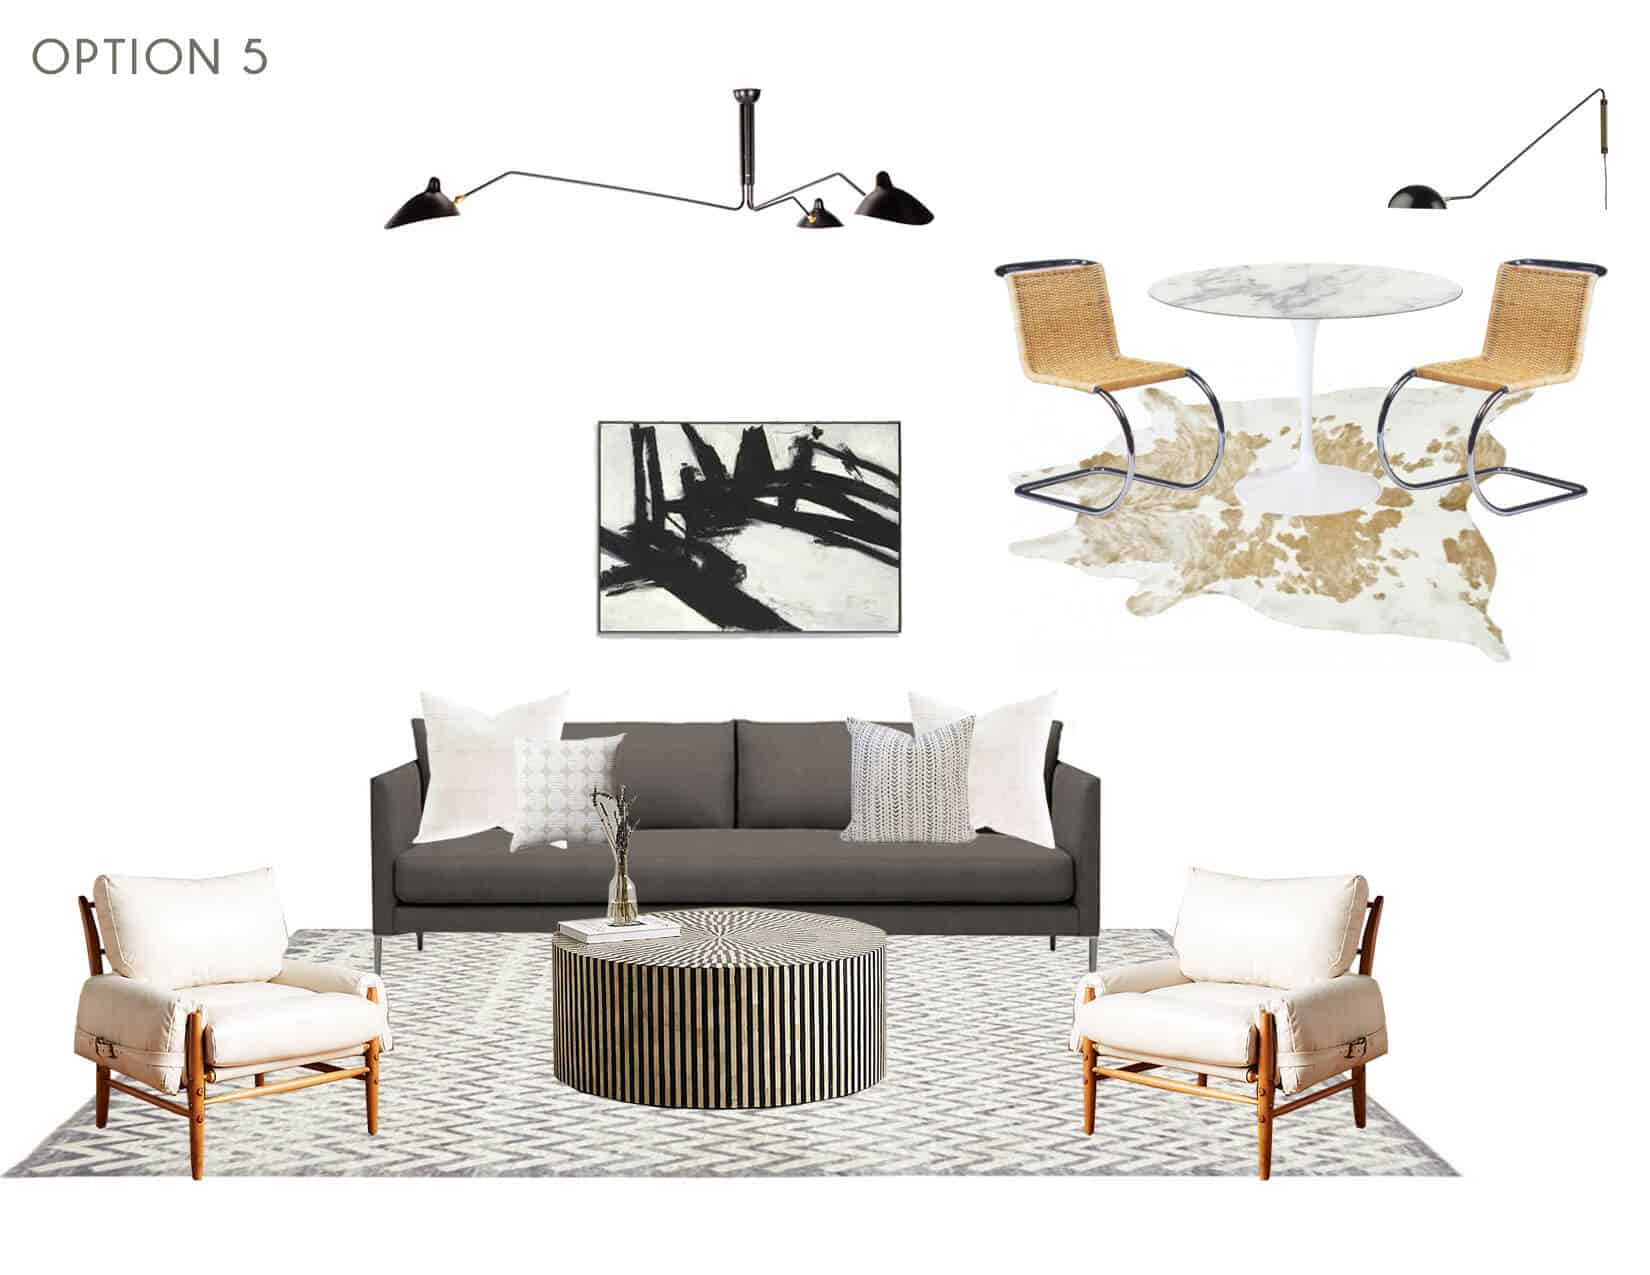 Emily Henderson_Full Design_Sunroom_Introduction_Moodboard_Option 5